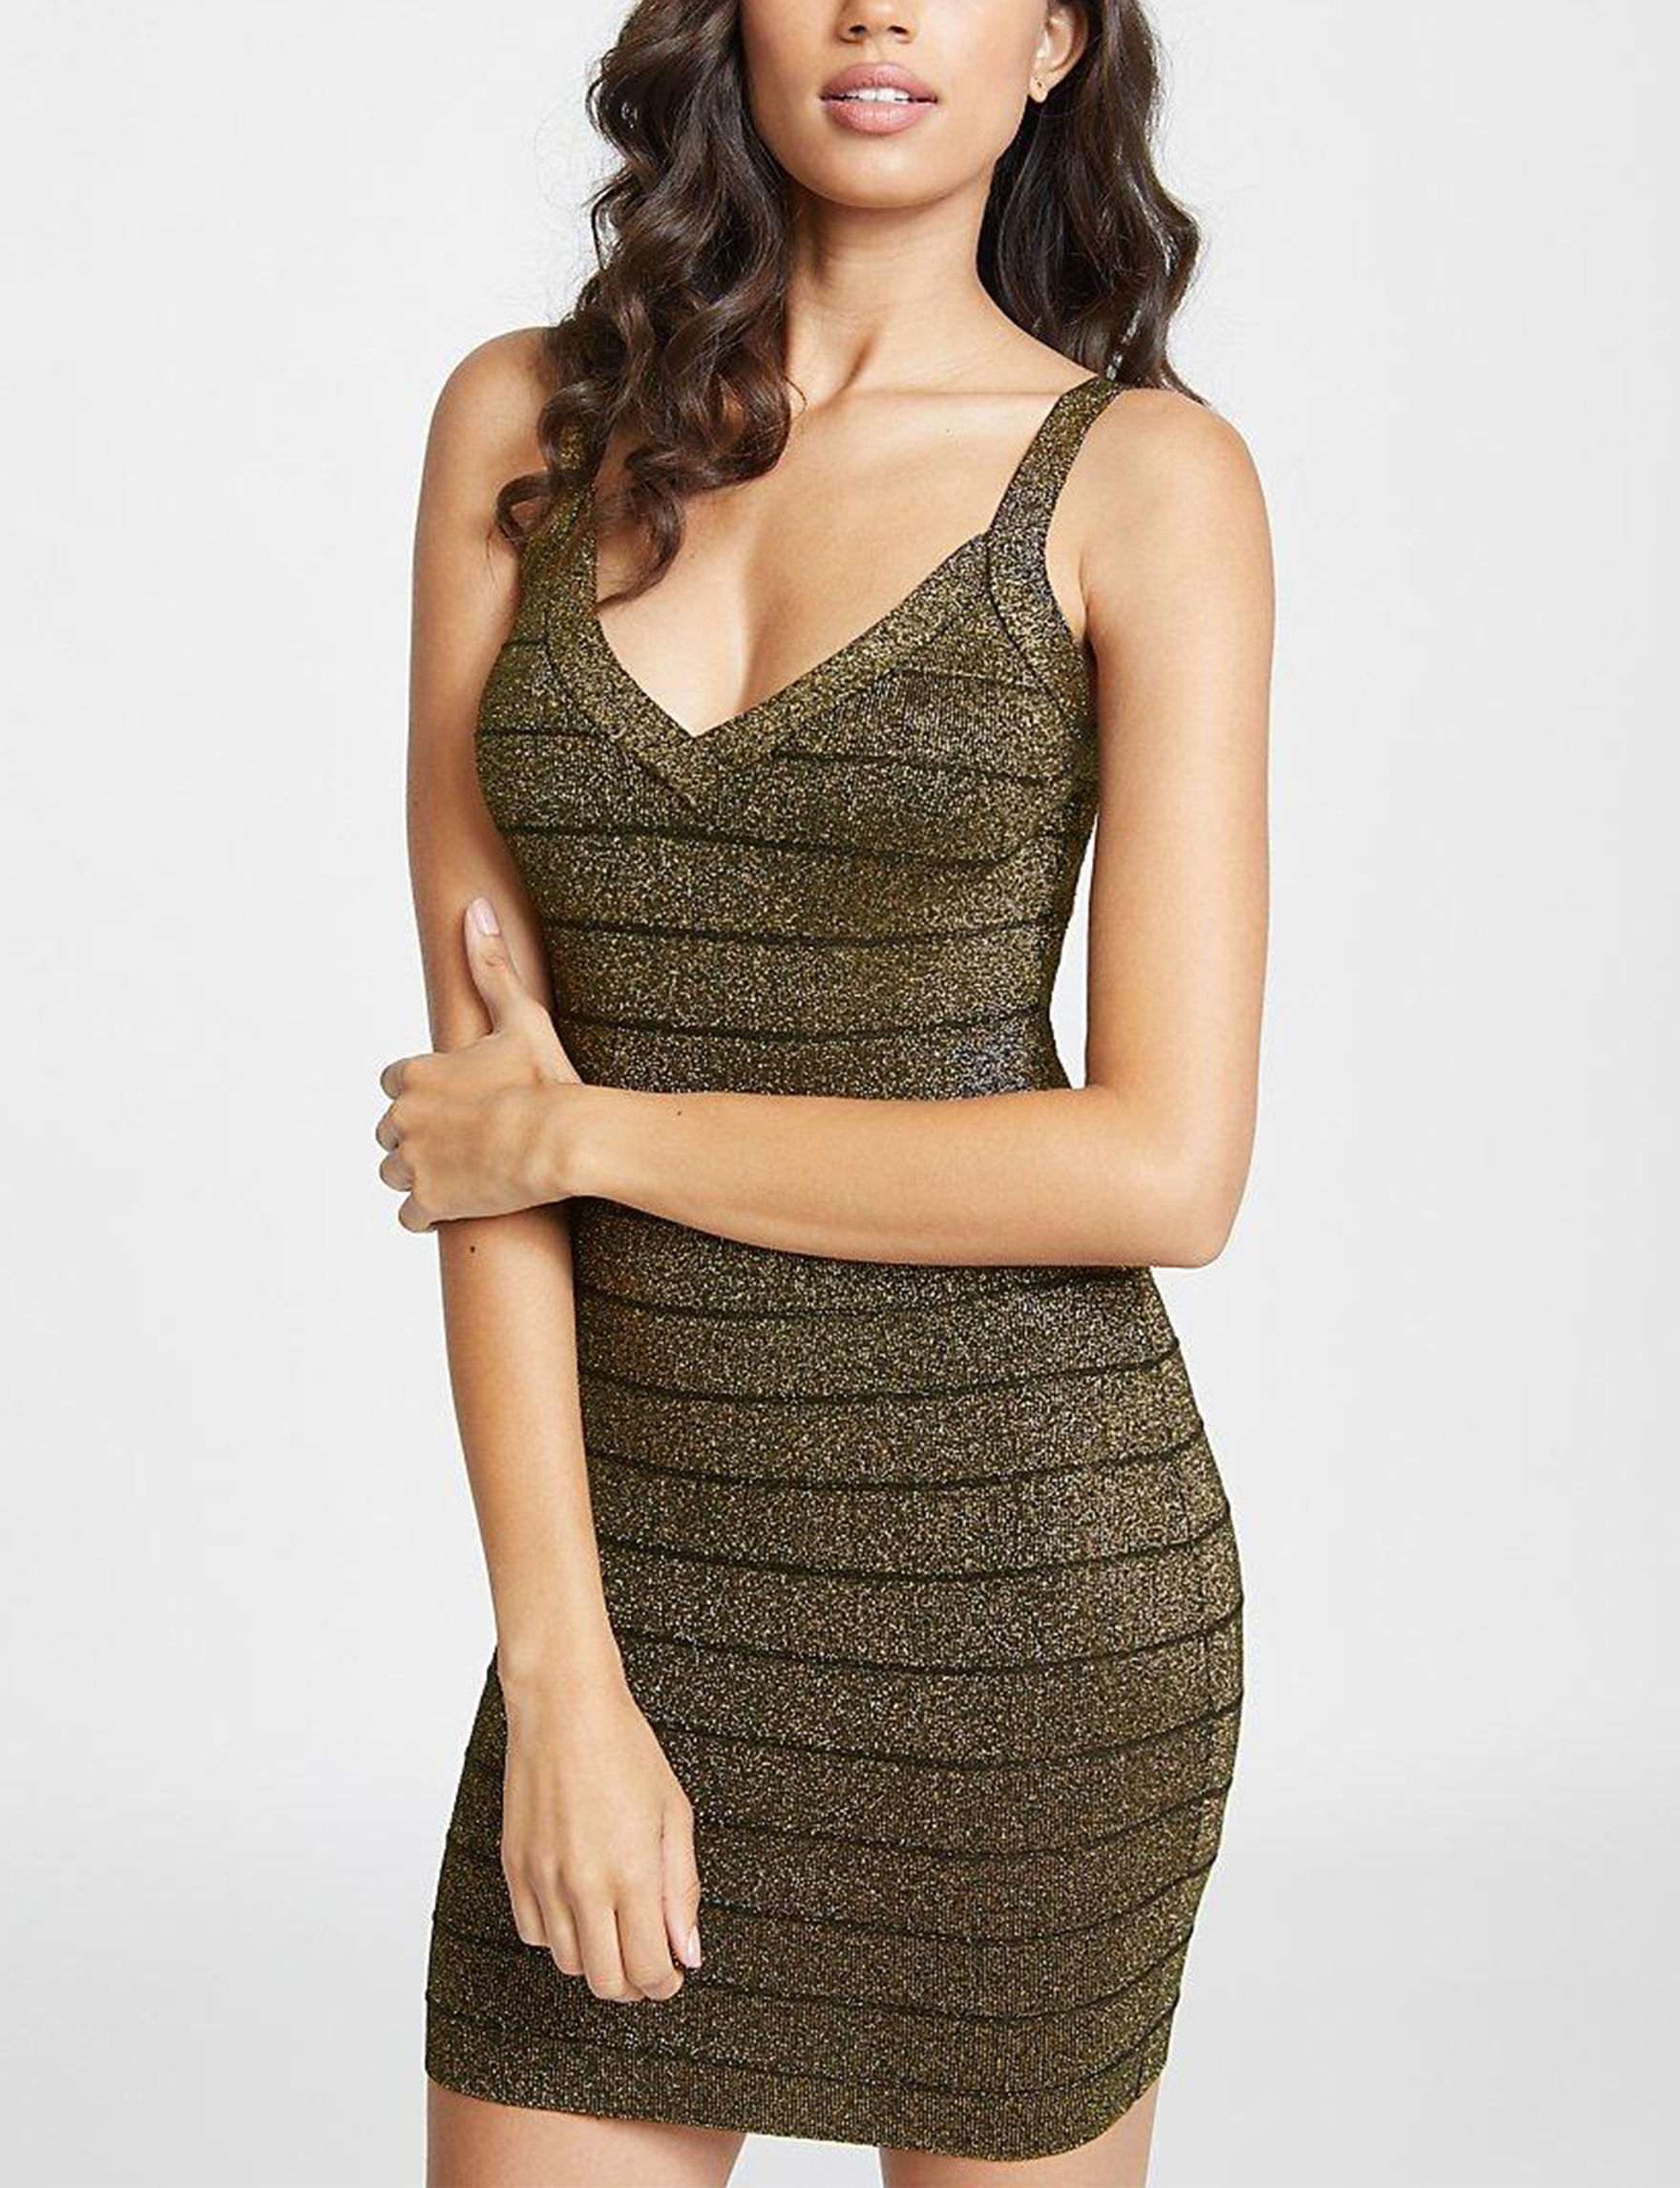 G by Guess Black / Gold Bodycon Dresses